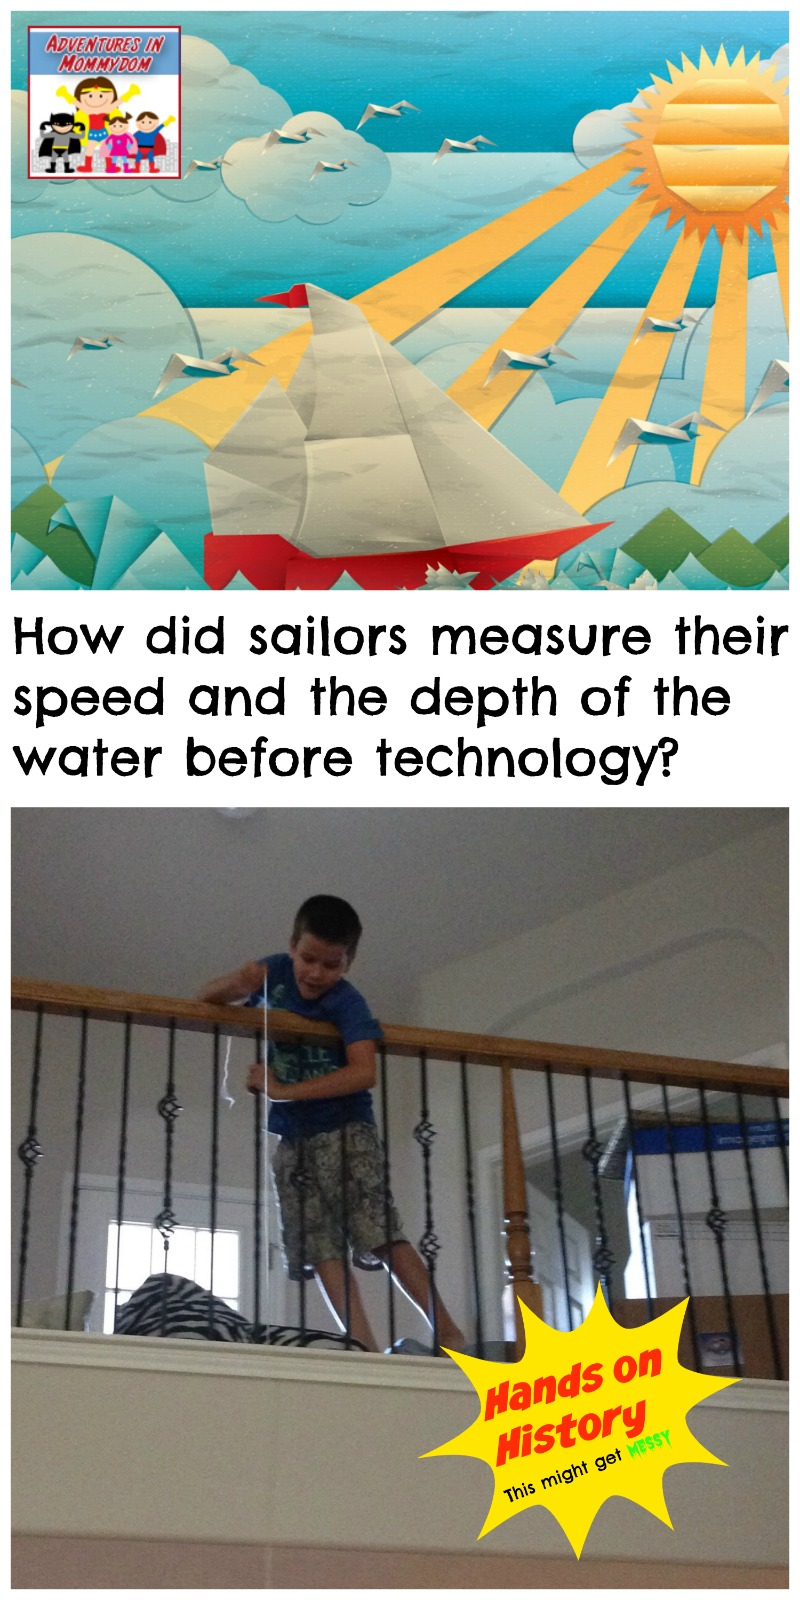 how did sailors measure their speed before technology